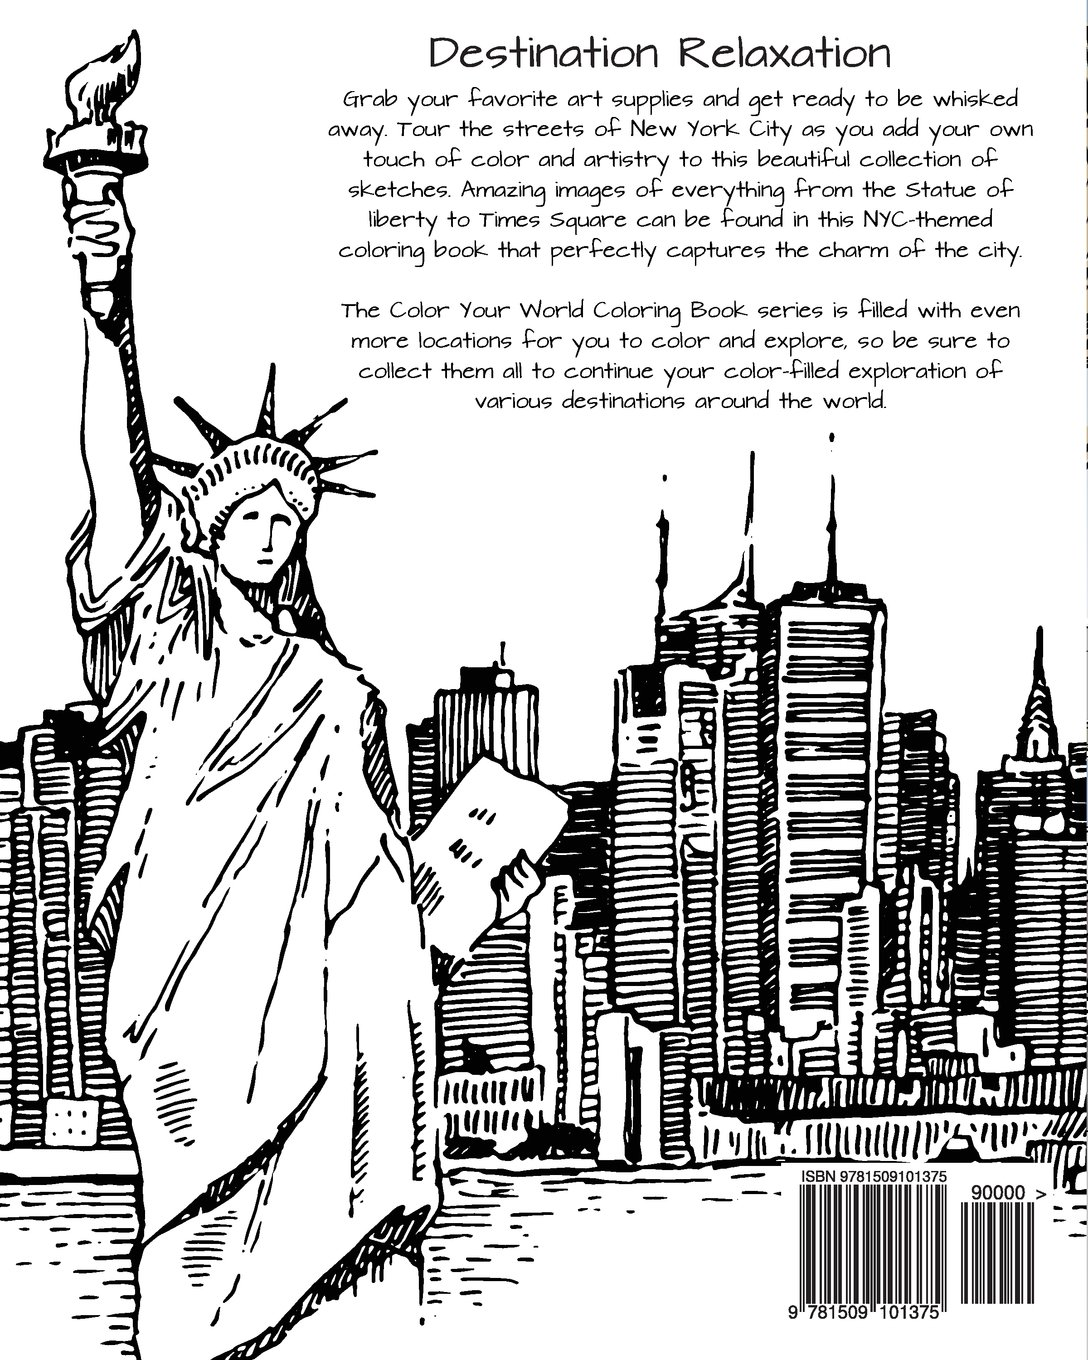 Discover New York City Destination Relaxation Color Your World Coloring Books HR Wallace Publishing 9781509101375 Amazon